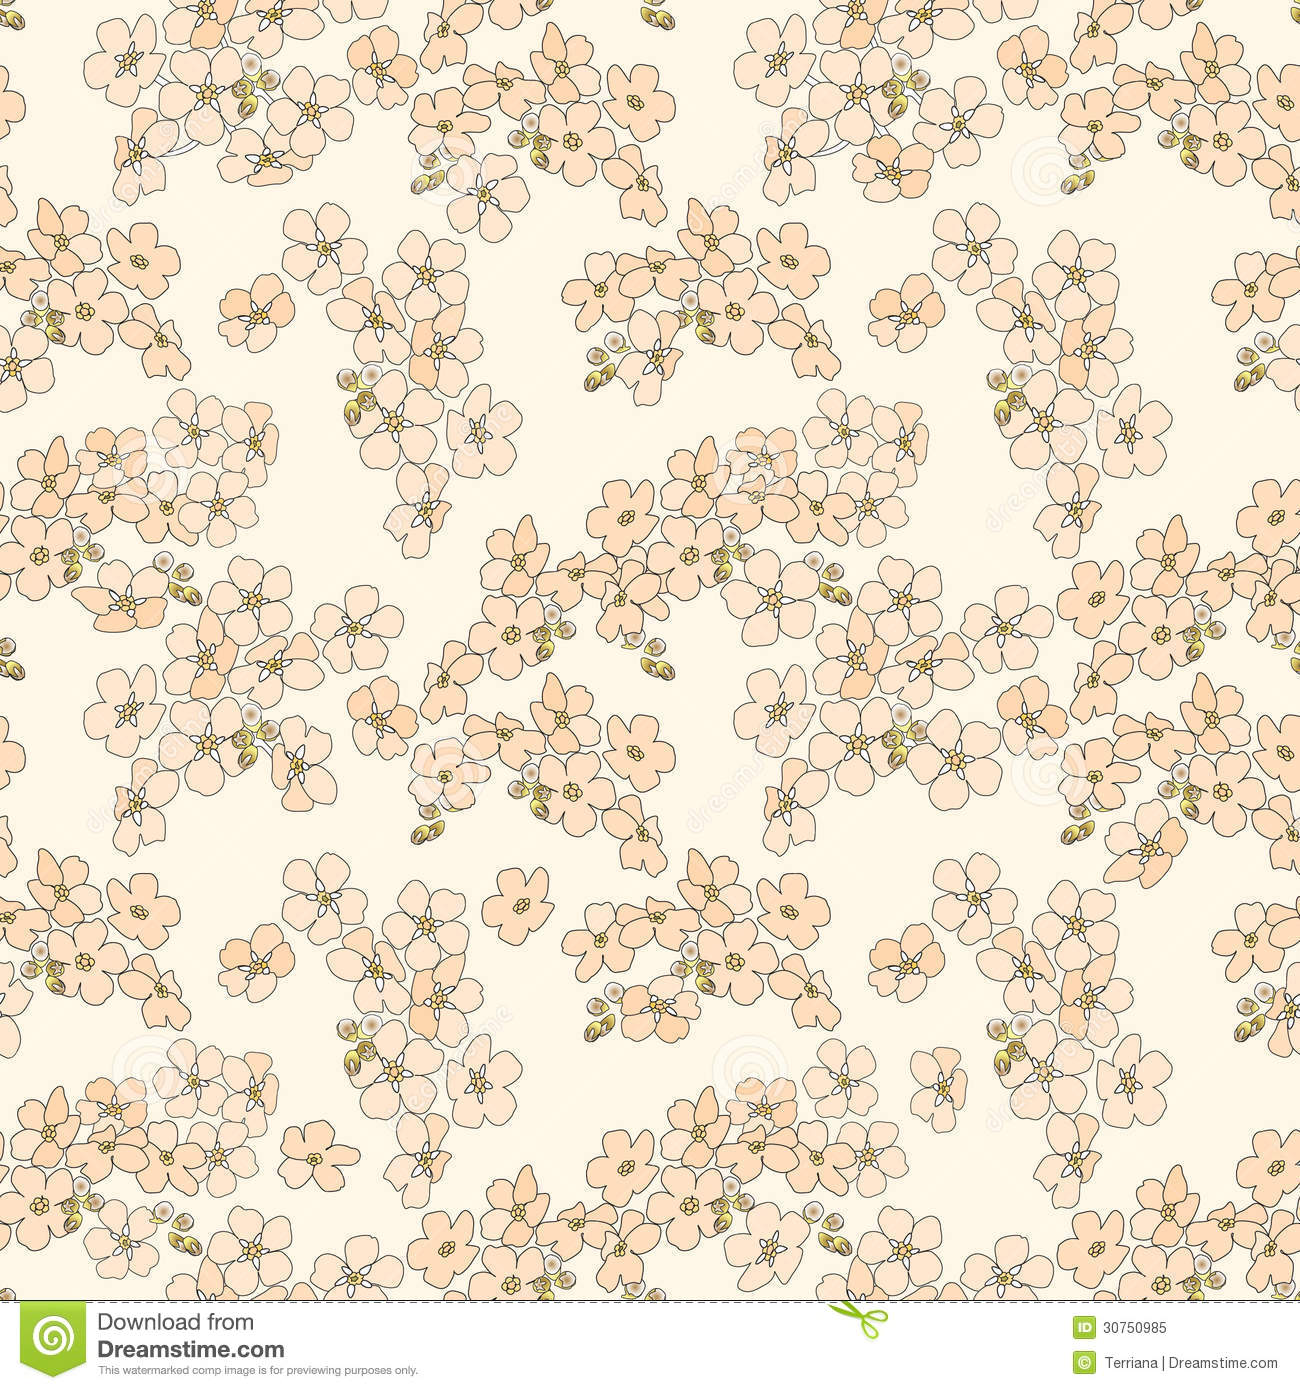 Abstract Beige Floral Seamless Texture Royalty Free Stock ...